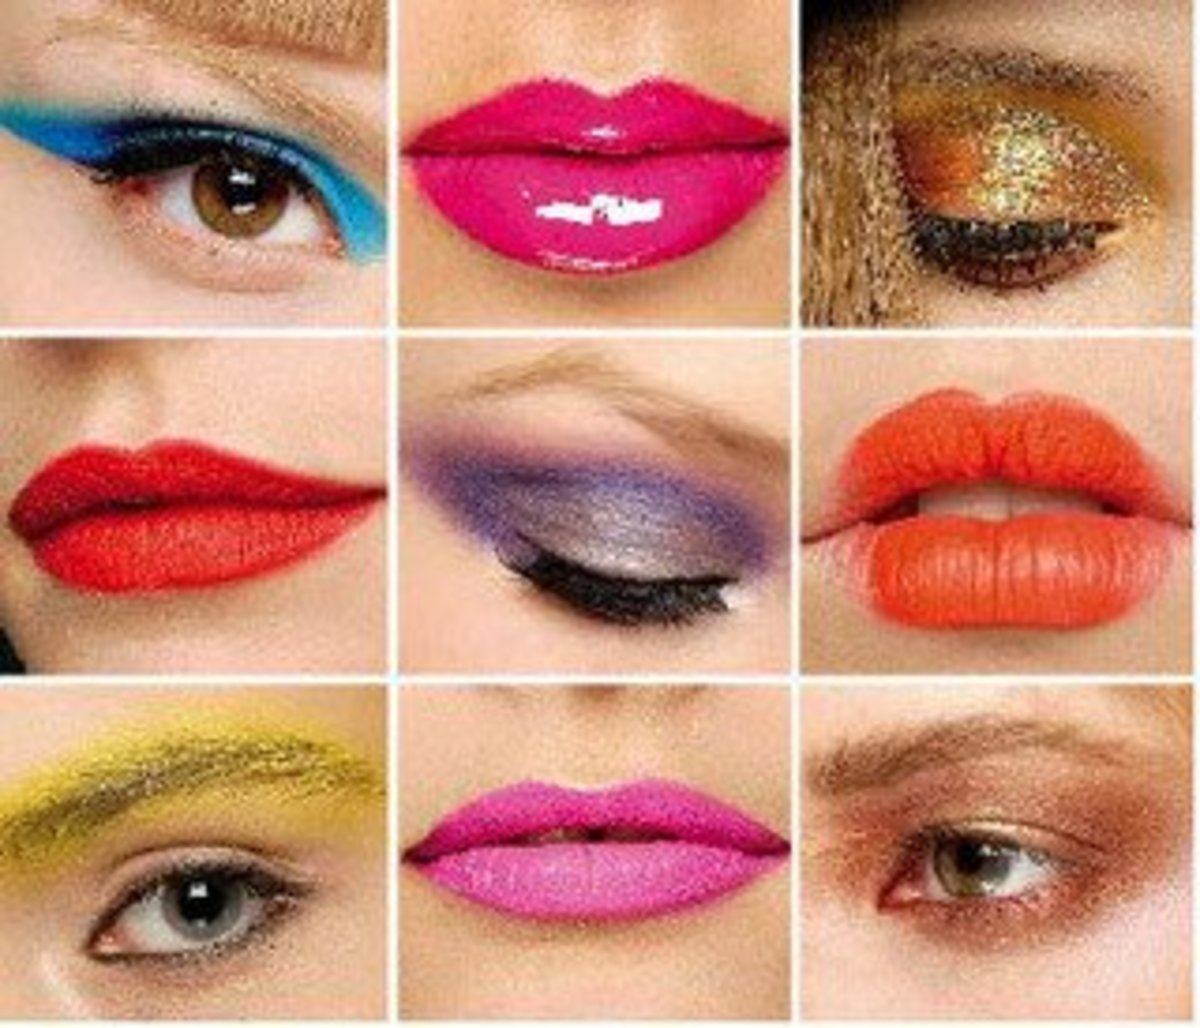 Most make-up products on the market are full of parabens that cause cancer.